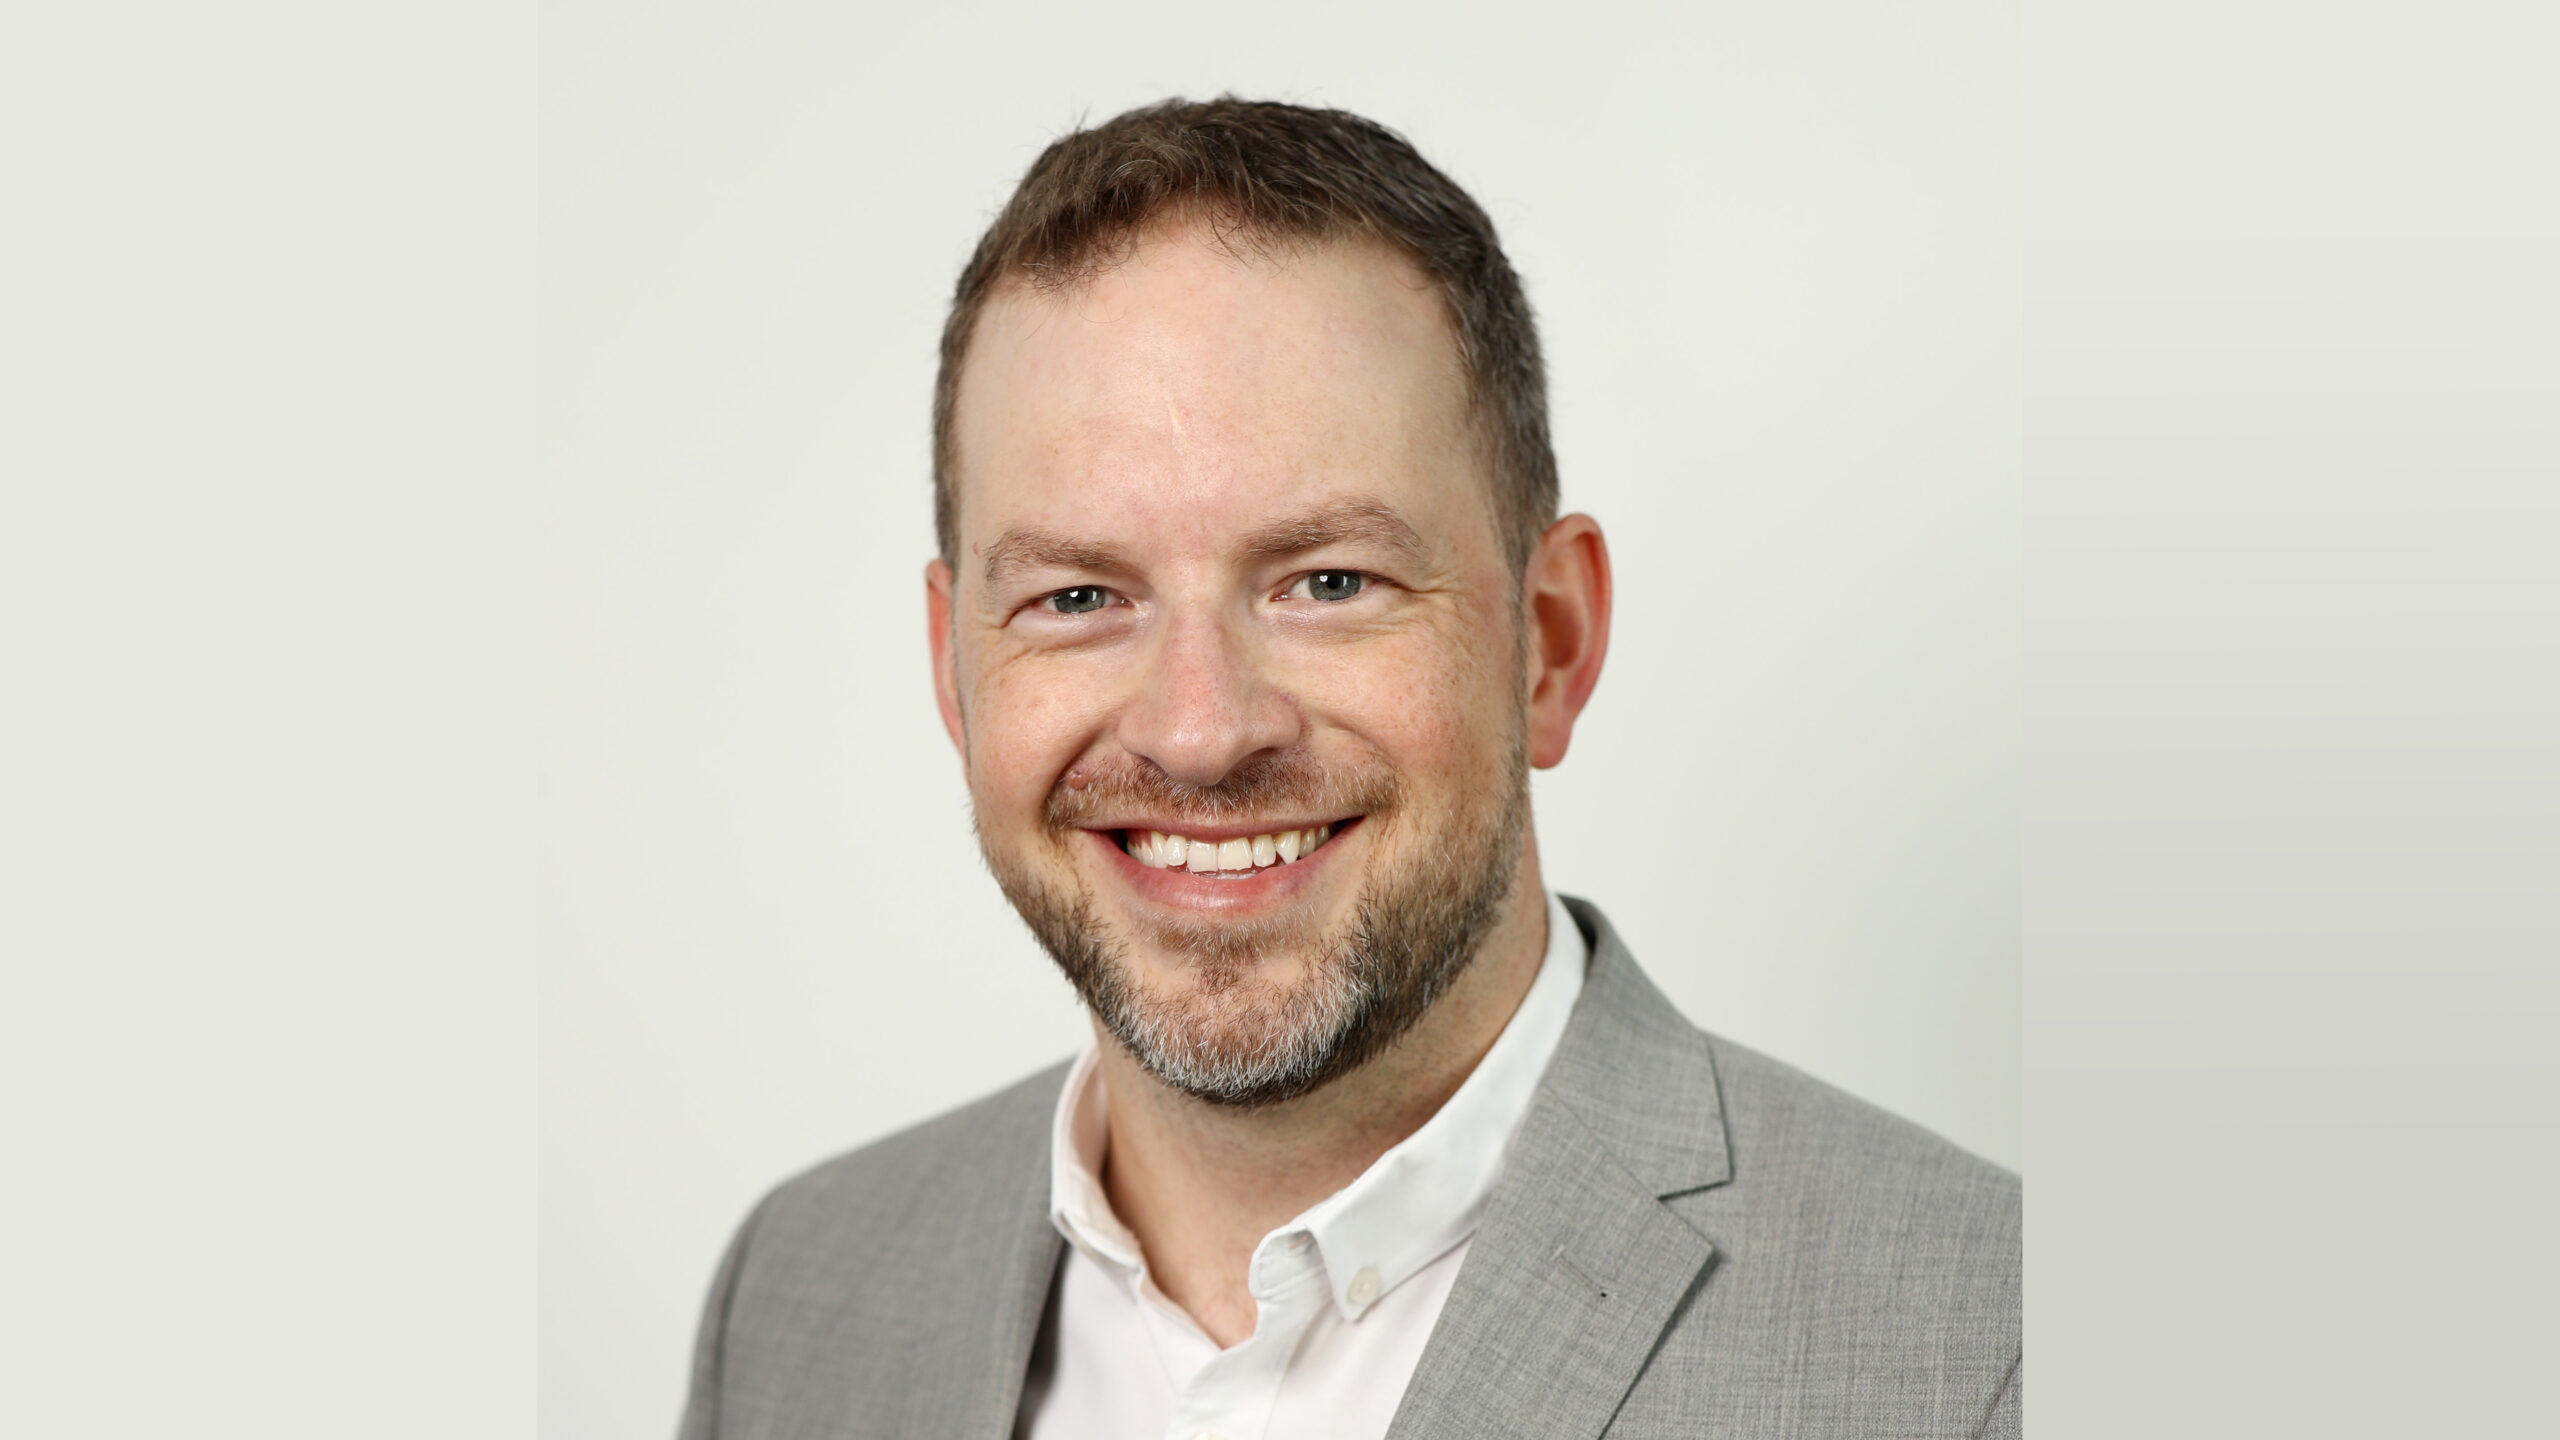 Seven appoints new Head of Corporate Communications